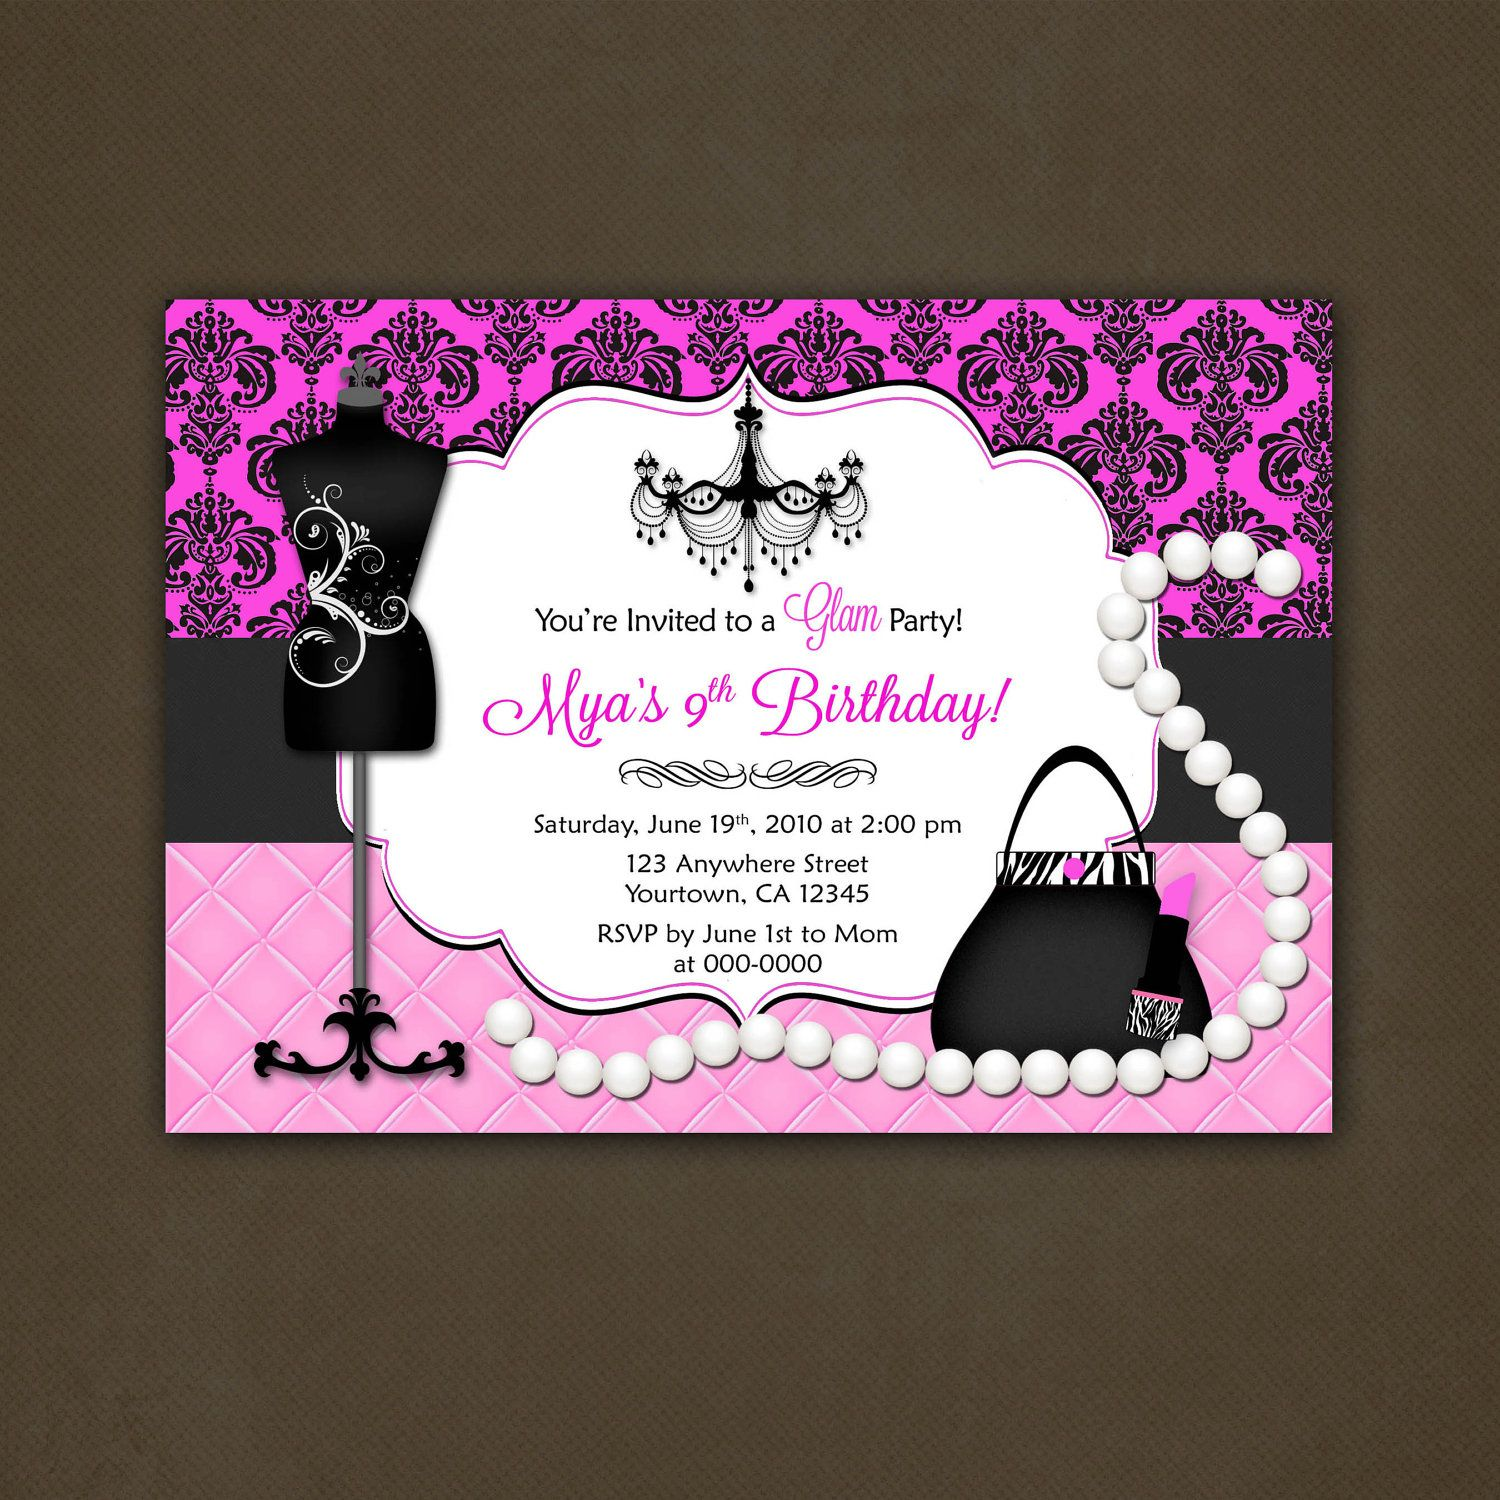 Fashionista invites | Glamour Fashionista Birthday Party ...